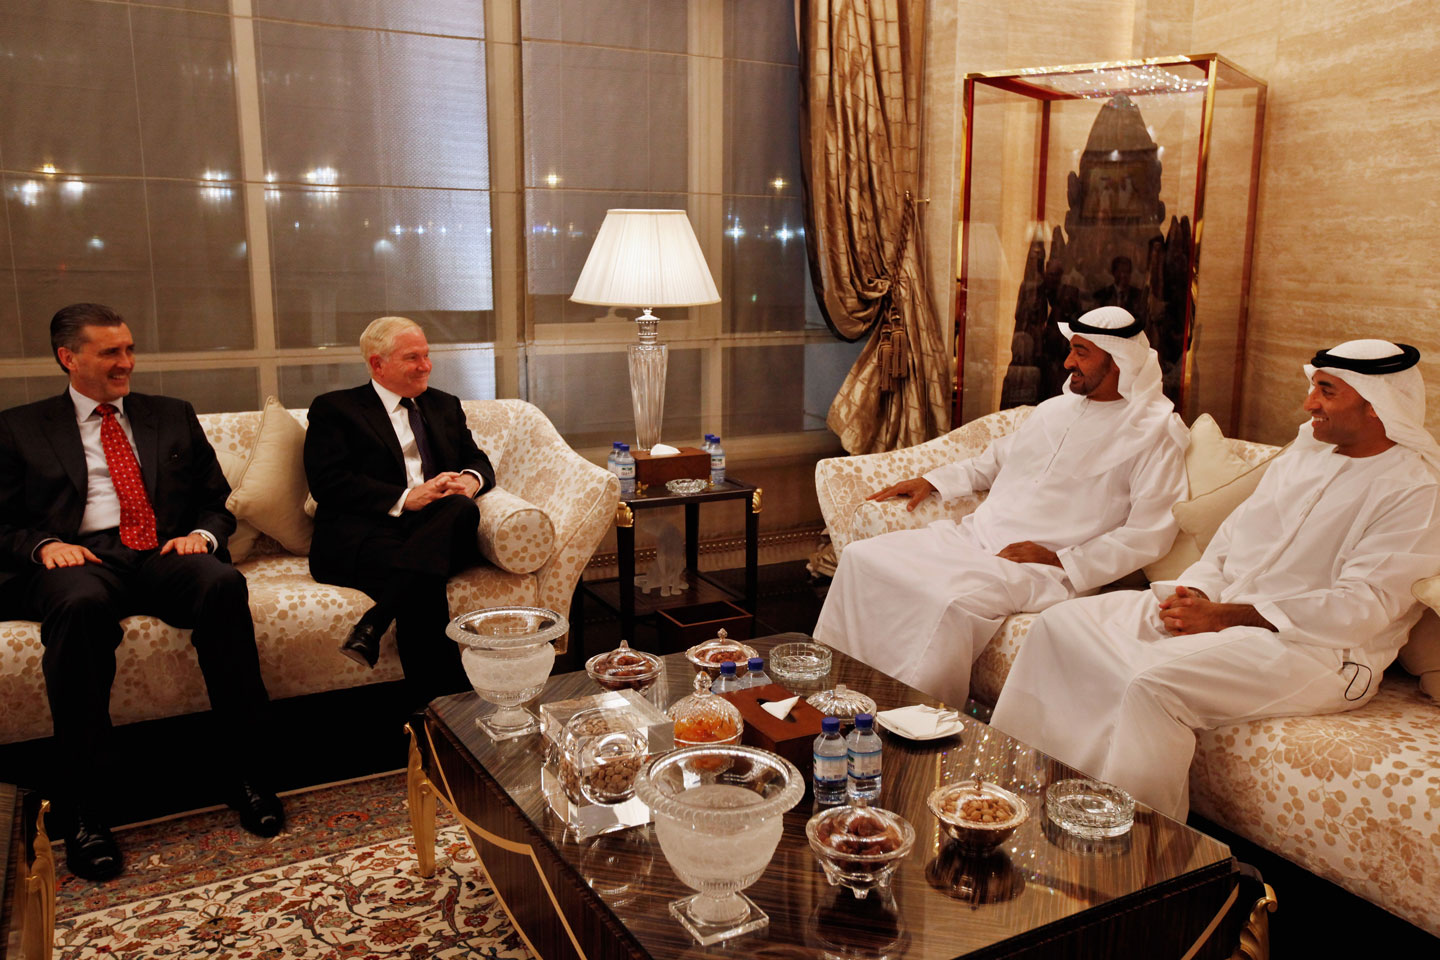 ABU DHABI, UNITED ARAB EMIRATES - APRIL 08: U.S. Defense Secretary Robert Gates (2nd L) meets with Mohammed bin Zayed bin Sultan Al Nahyan (2nd R), the Crown Prince of Abu Dhabi and Deputy Supreme Commander of the United Arab Emirates Armed Forces, U.S. Ambassador to the UAE Richard Olson (L) and UAE Ambassador to the U.S. Yousef Al Otaiba (R) at the crown prince's home, the Mina Palace, April 8, 2011 in Abu Dhabi, United Arab Emirates. Gates visited Saudi Arabia and Iraq on this trip and will discuss the bilateral defense, and the unrest that is gripping the Mideast and Iran with the crown prince. (Photo by Chip Somodevilla/Getty Images)